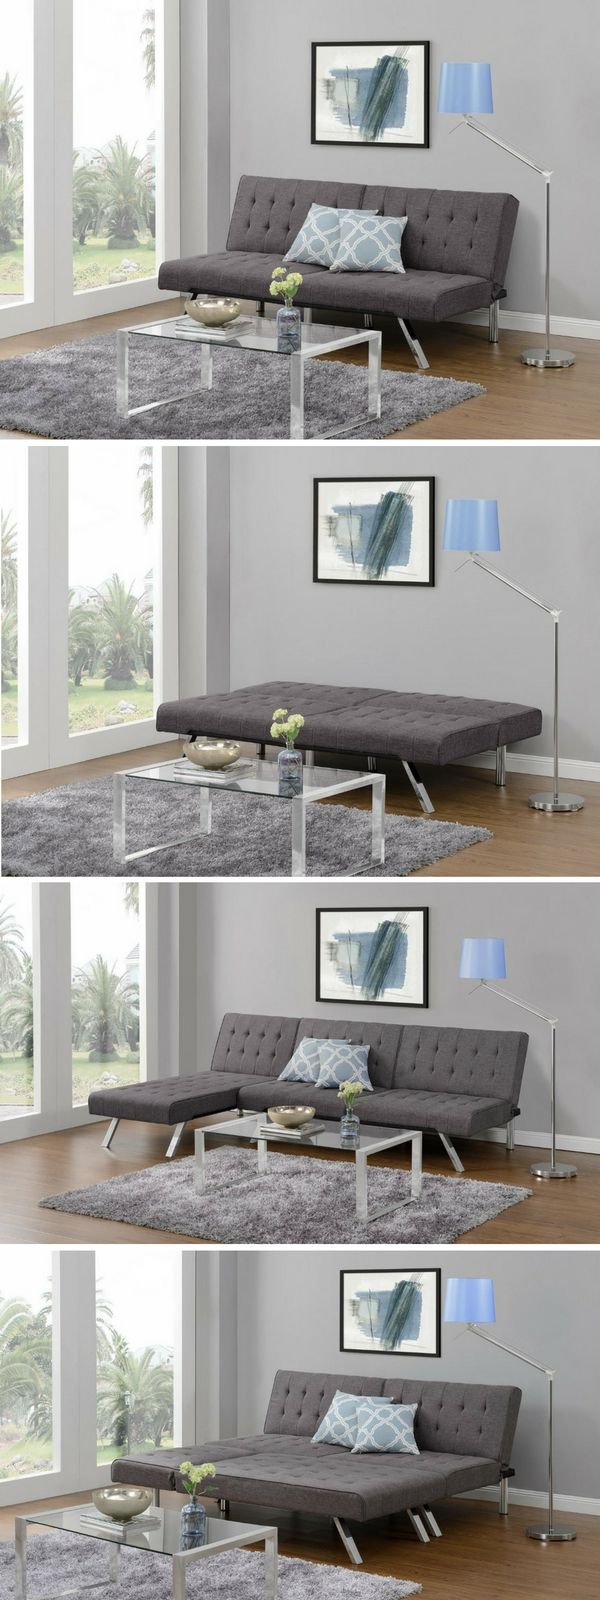 check out the dhp emily convertible linen futon istandarddesign more - Futon Bedroom Ideas